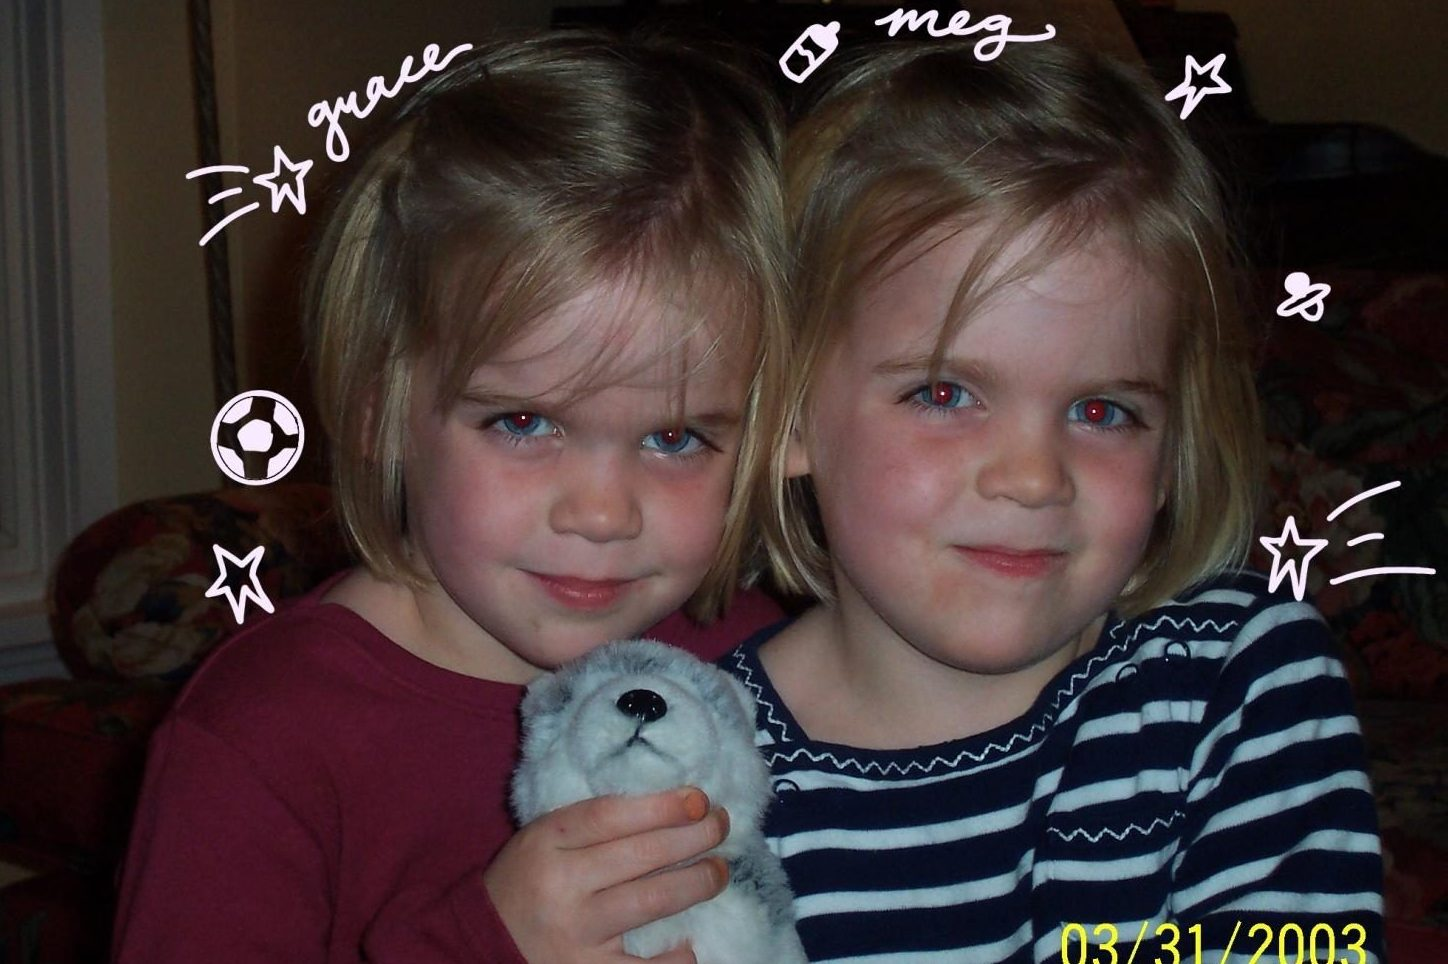 My identical twin, Grace and I, when we were 3 years old.